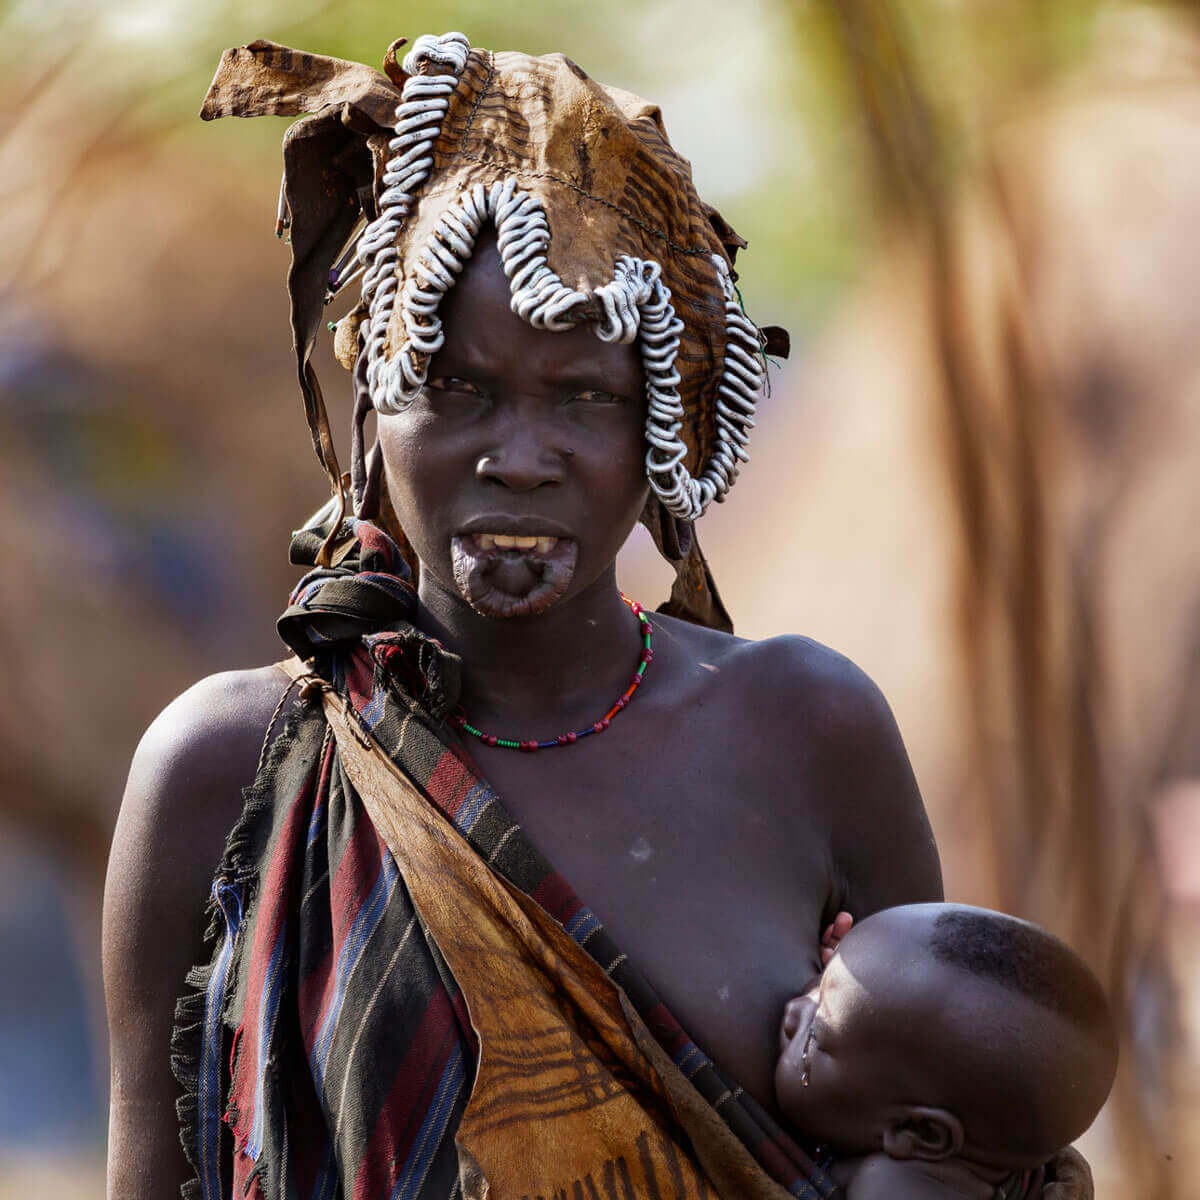 Ethiopia_mursi_tribe_surma_suri_lipplate_kids_baby_omo_valley_traveling_thebesttime_visiting_village_adventuresinethiopia